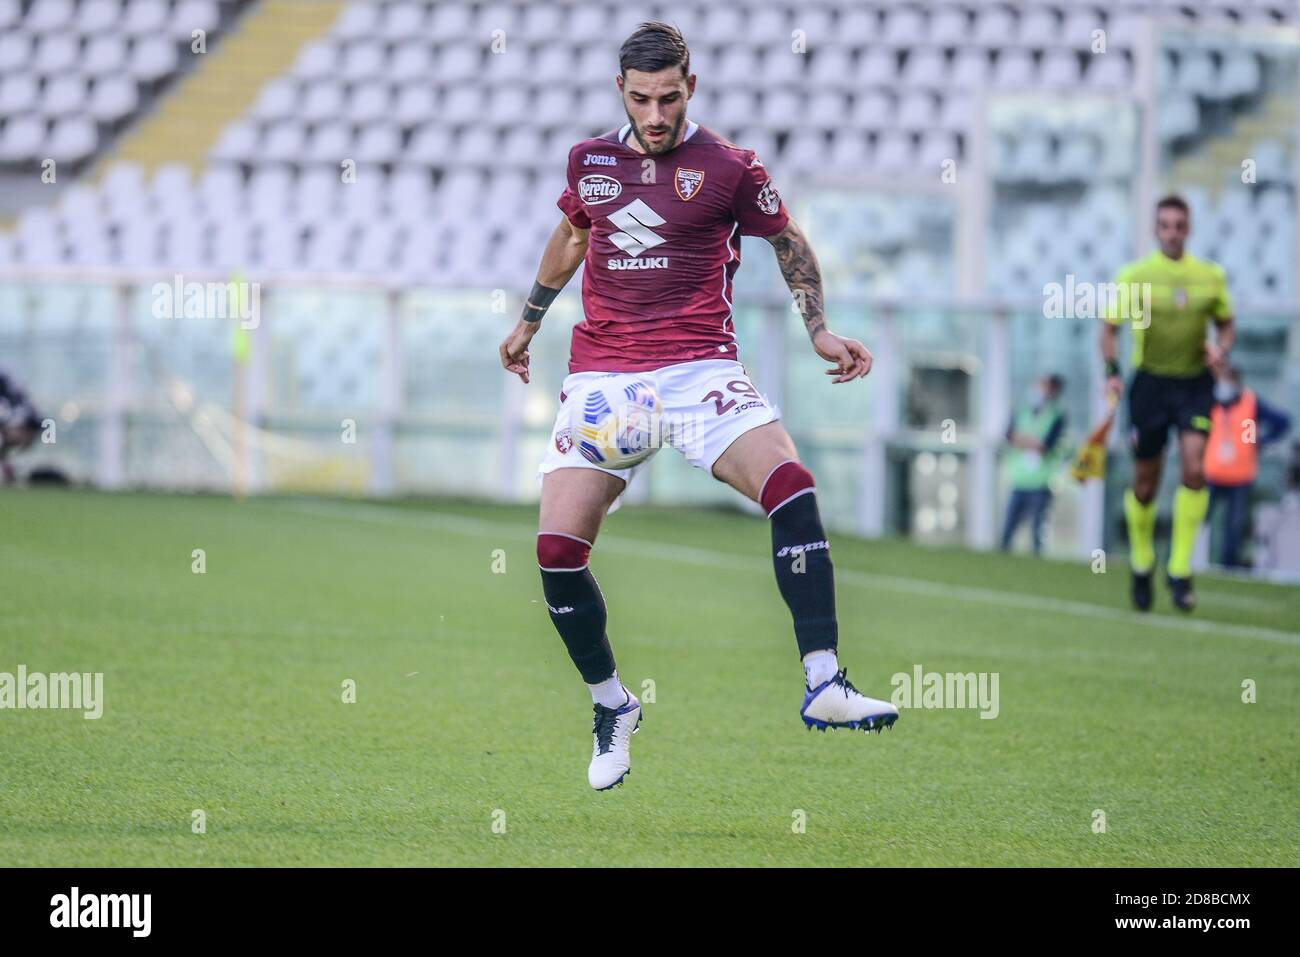 Turin, Italy. 28th Oct, 2020. Nicola Murru of Torino FC during the Coppa Italia football match between Torino FC and US Lecce at Olympic Grande Torino Stadium on October 18, 2020 in Turin, Italy. (Photo by Alberto Gandolfo/Pacific Press) Credit: Pacific Press Media Production Corp./Alamy Live News Stock Photo